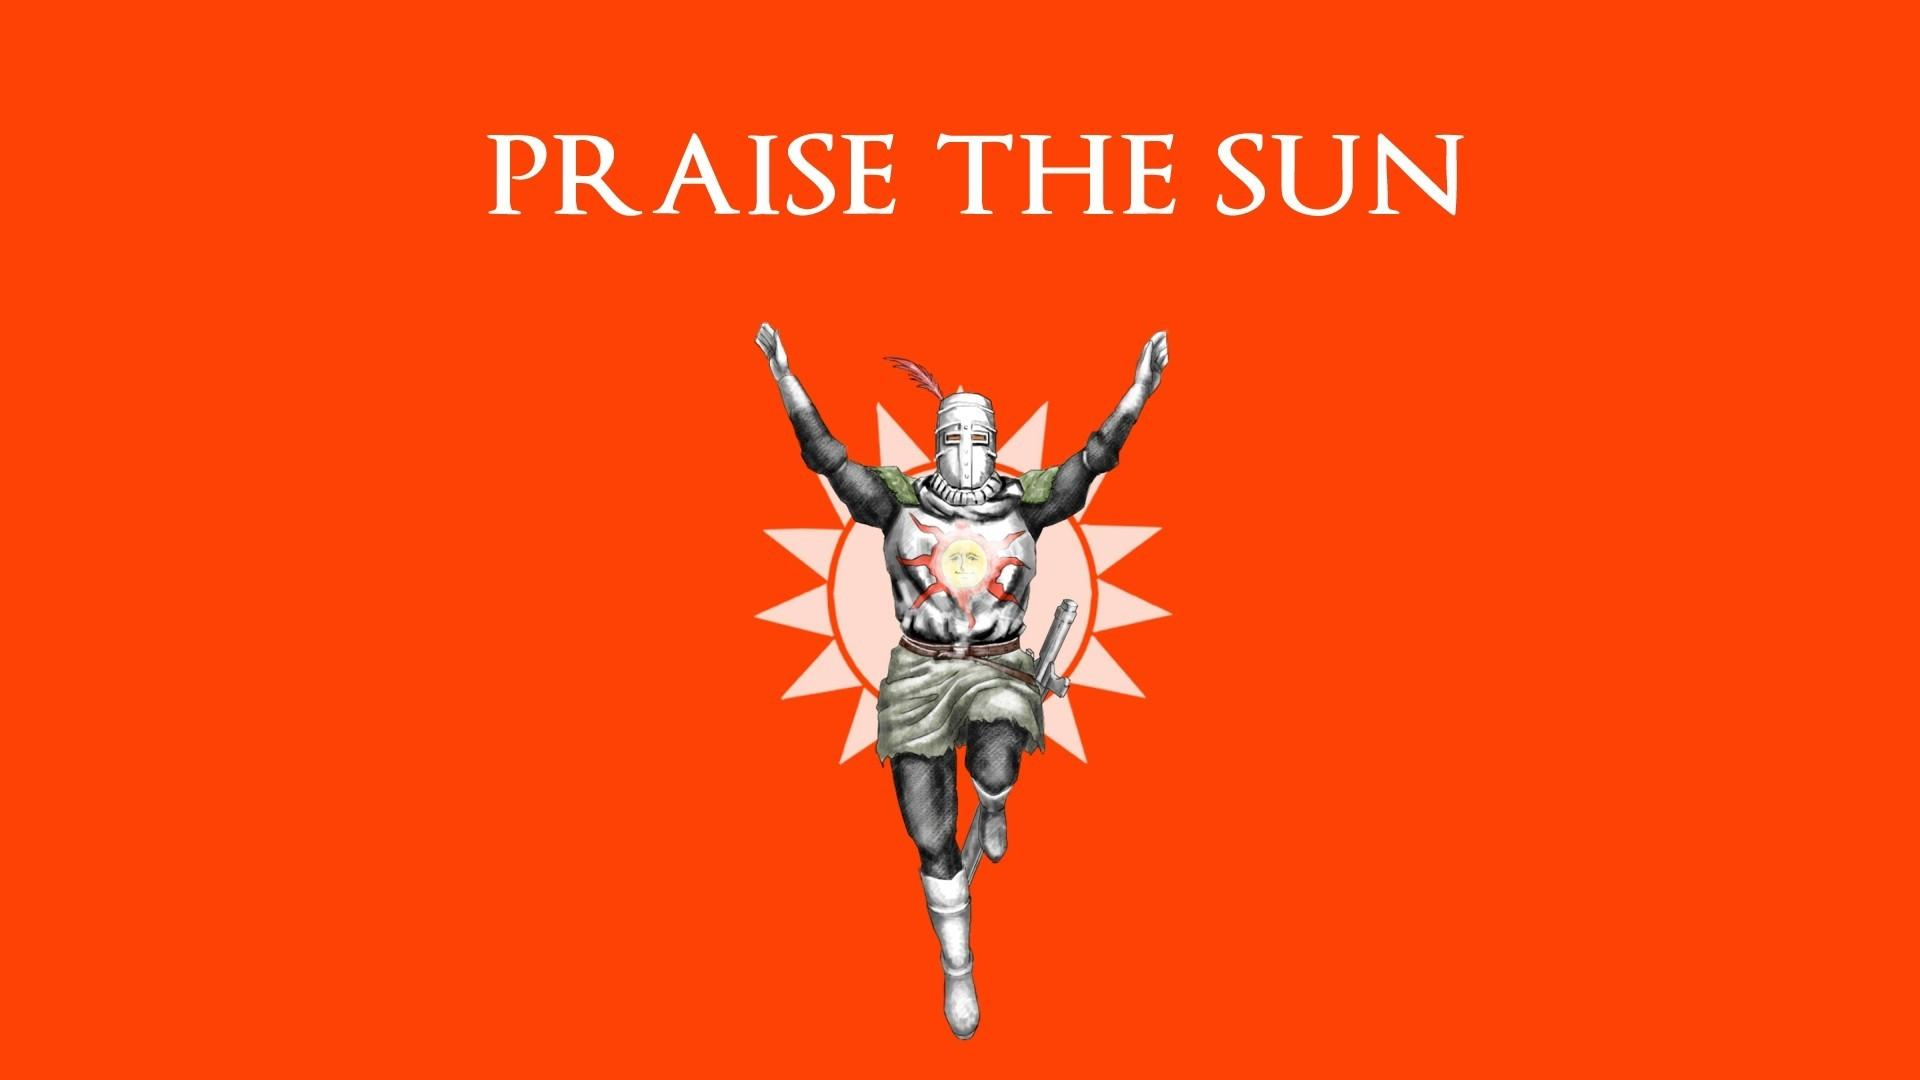 solaire iphone wallpaper - photo #8